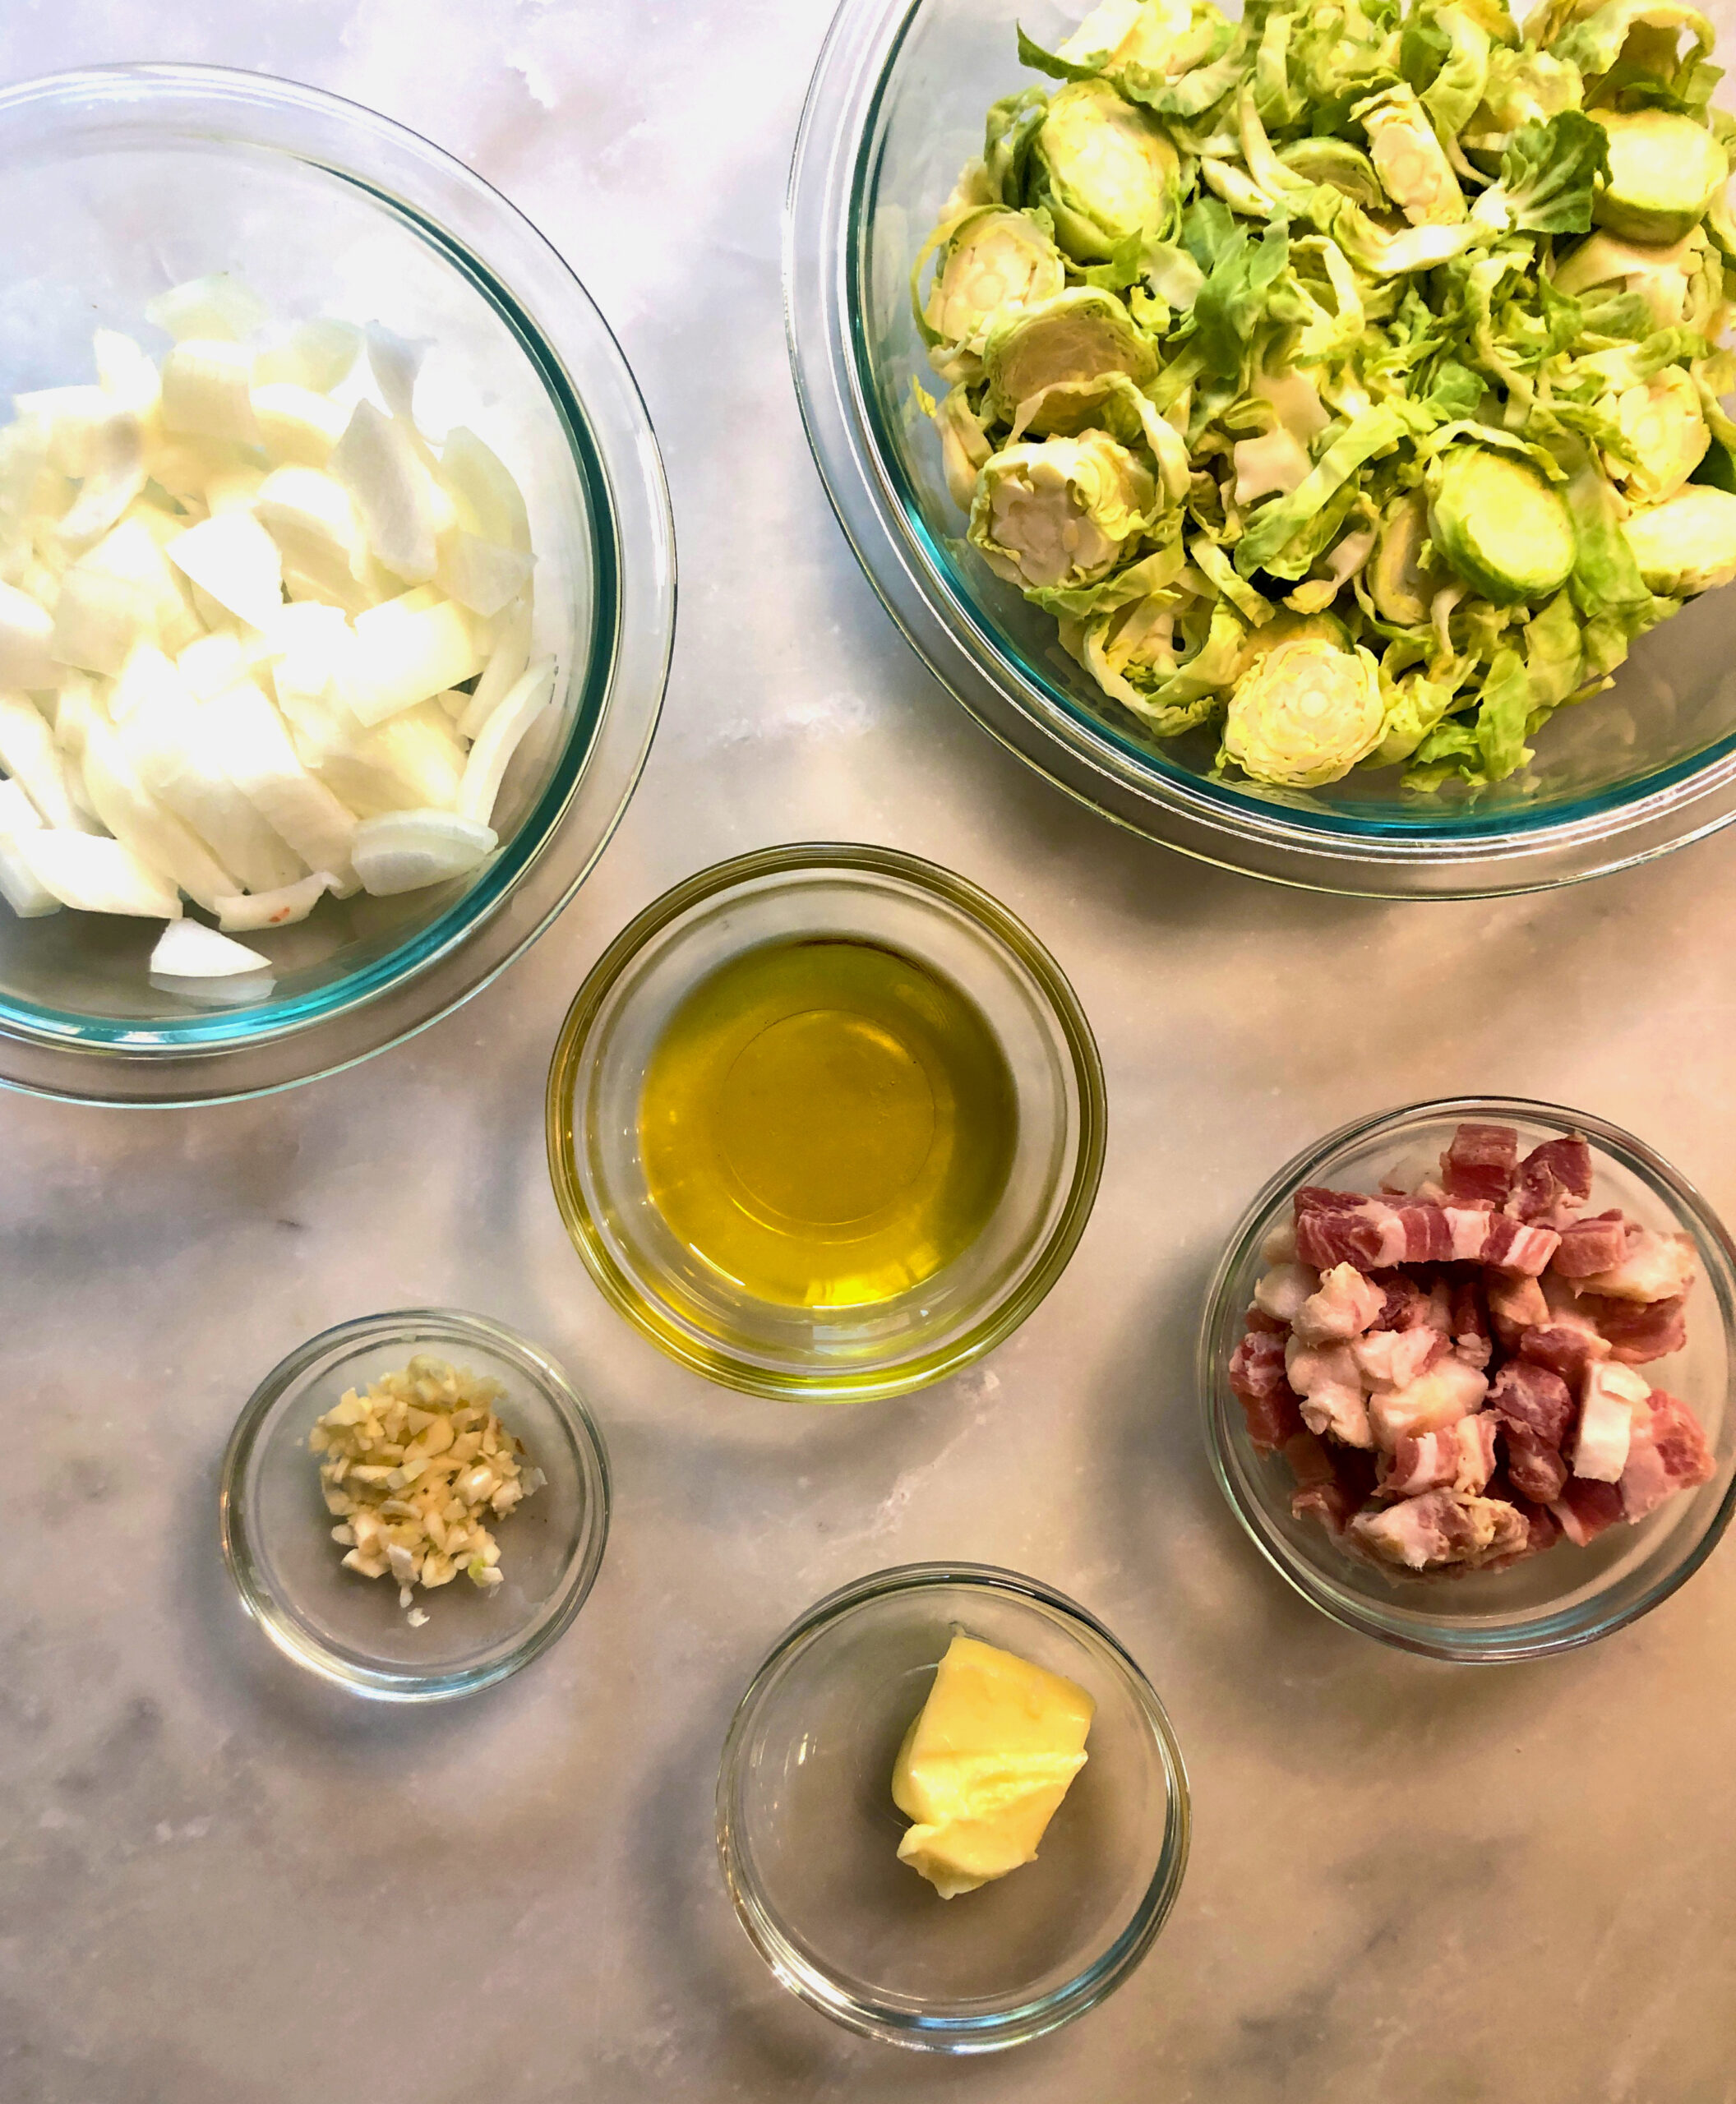 Brussels sprouts with pancetta and egg noodles ingredients